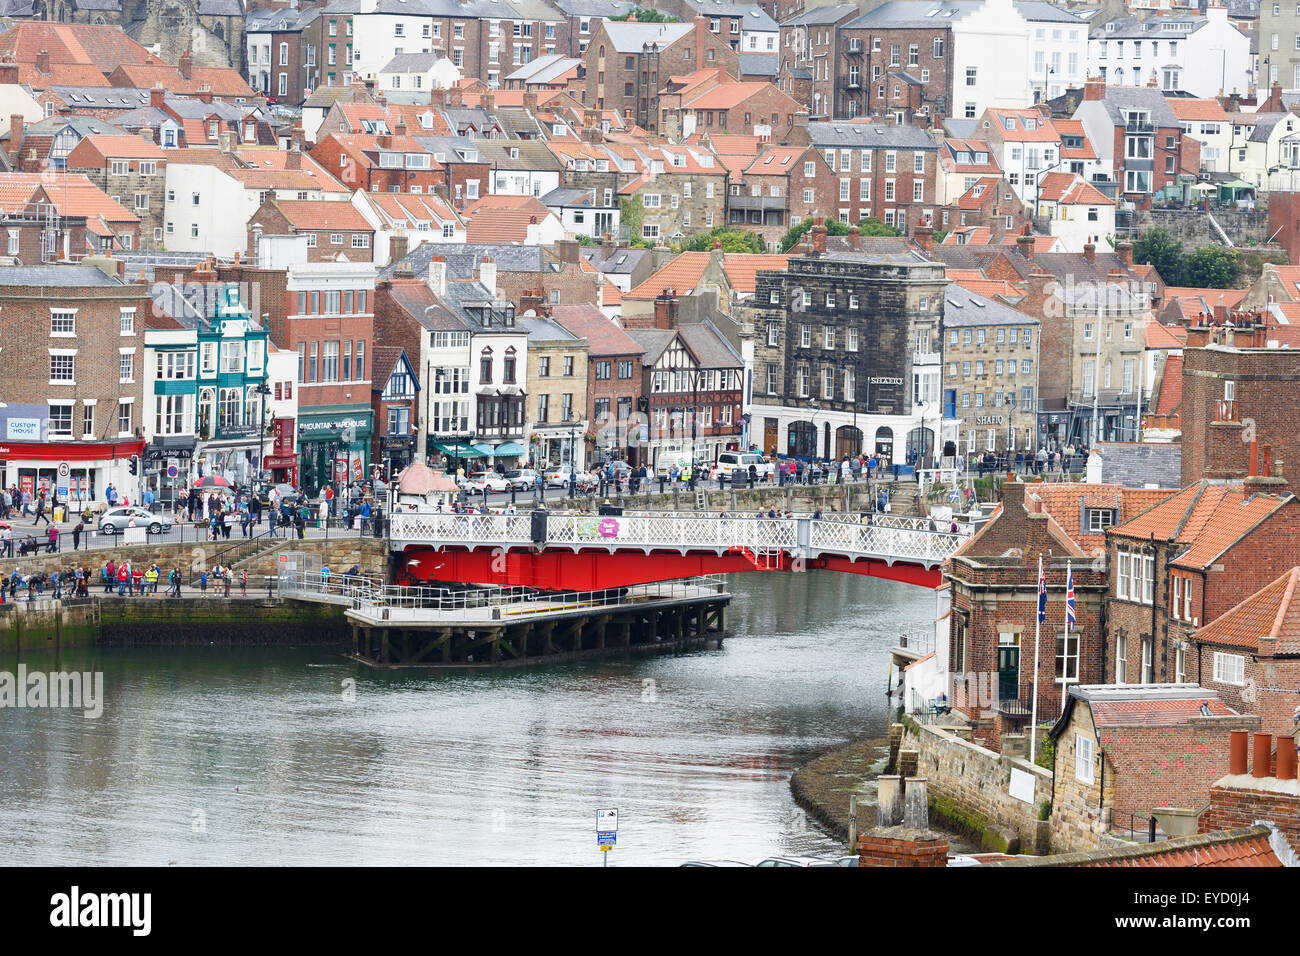 Whitby, Yorkshire, showing the River Esk and the swing bridge - Stock Image